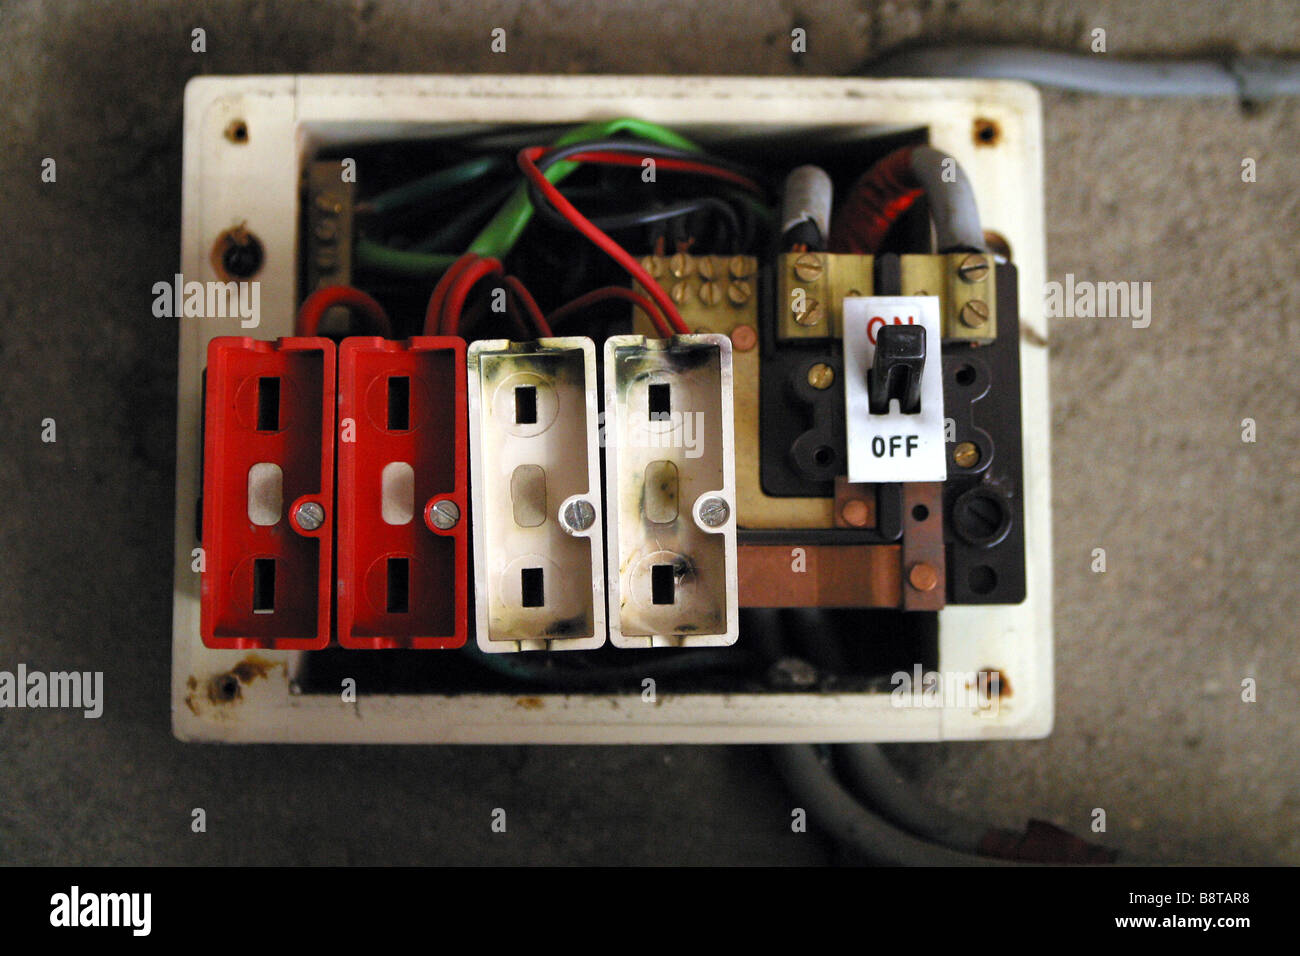 wiring a fuse box parts of a fuse box panel